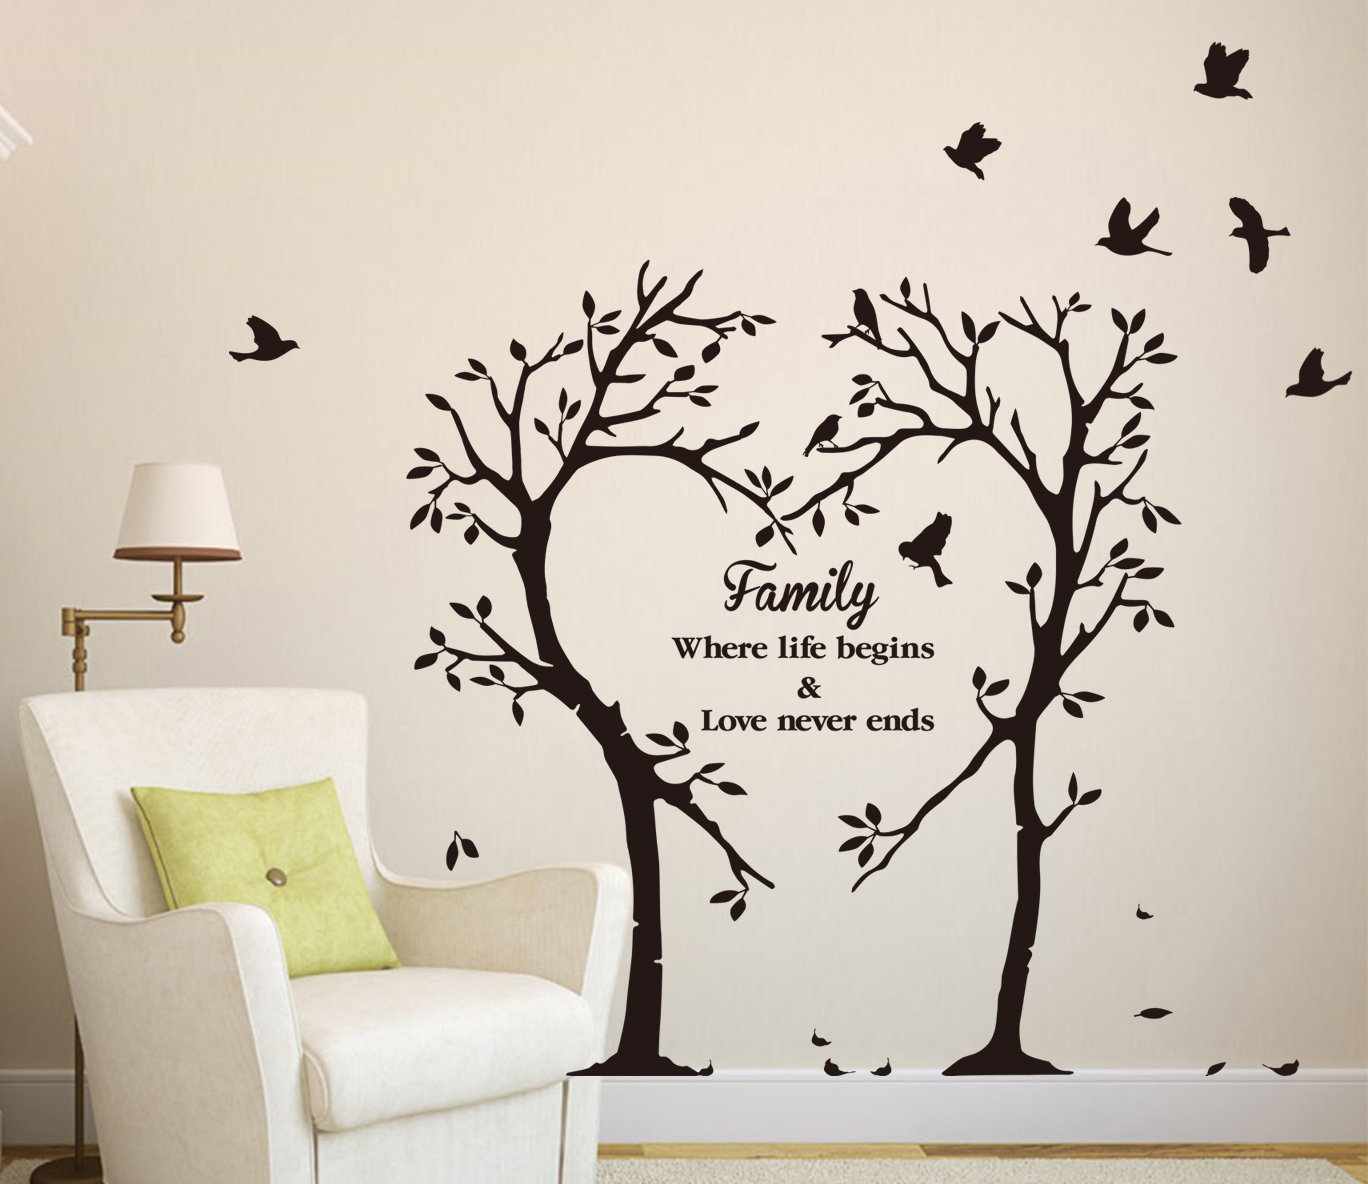 LARGE Family Inspirational Love Tree Wall Art Sticker, Wall Sticker Decal Part 17